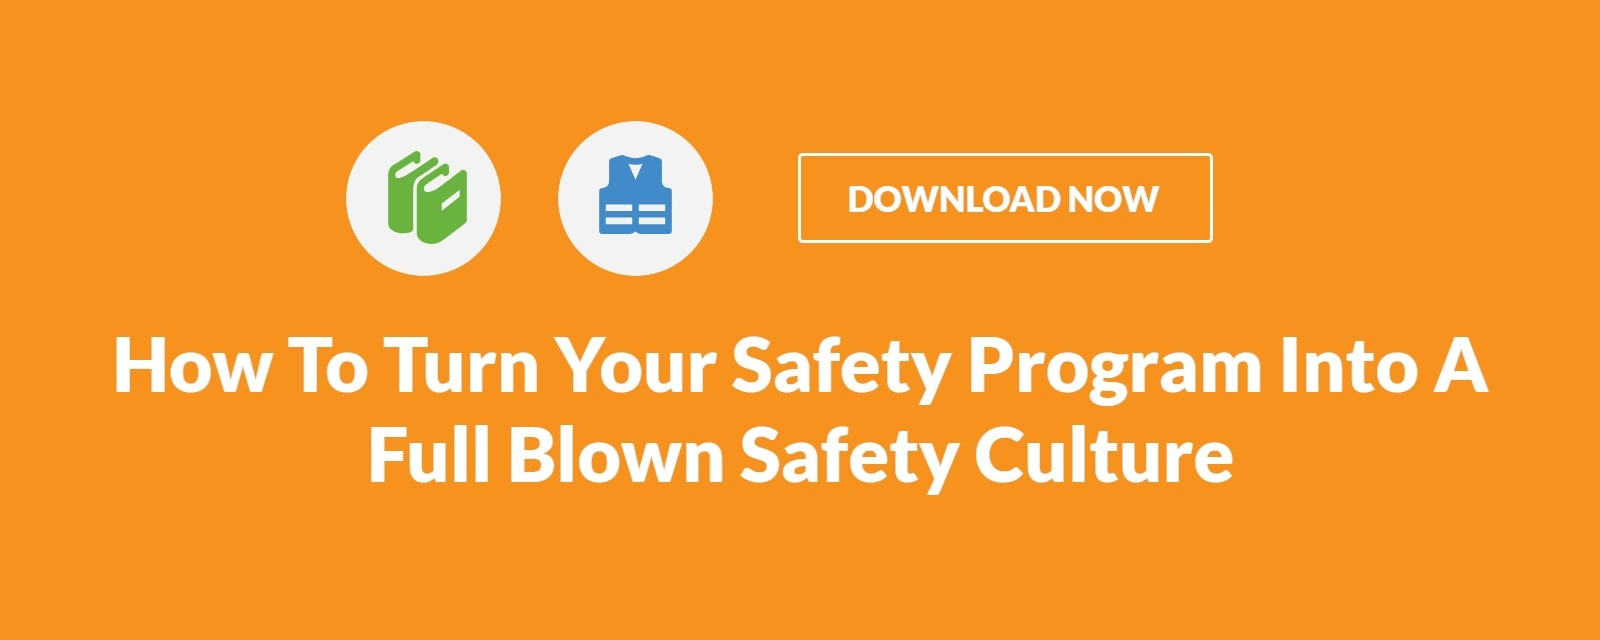 How To Turn Your Safety Program Into A Full Blown Safety Culture